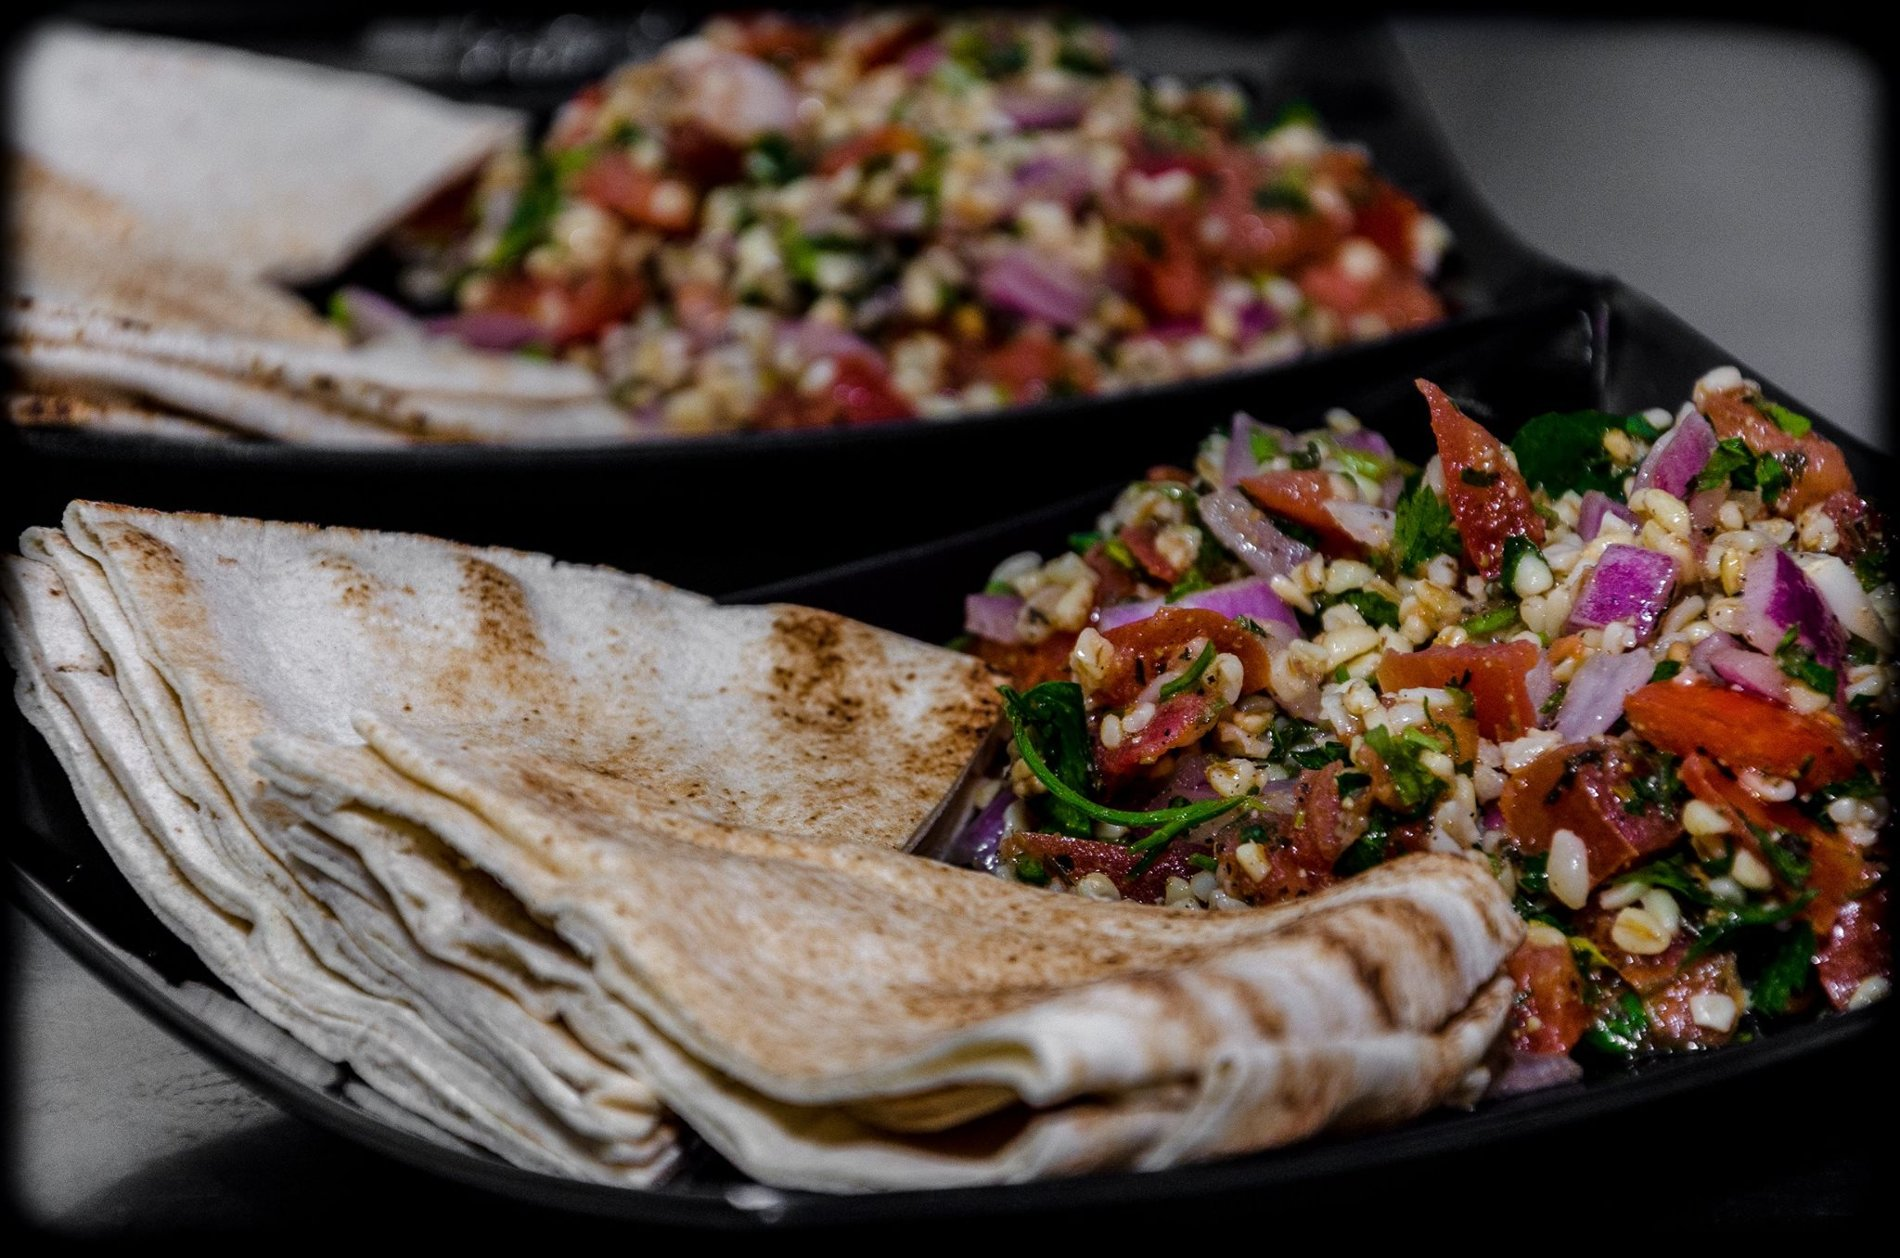 Taboule is one of the specialties in  Avli tou Petrou  restaurant, located in Metaxourgeio, Athens. Source: Avli tou Petrou